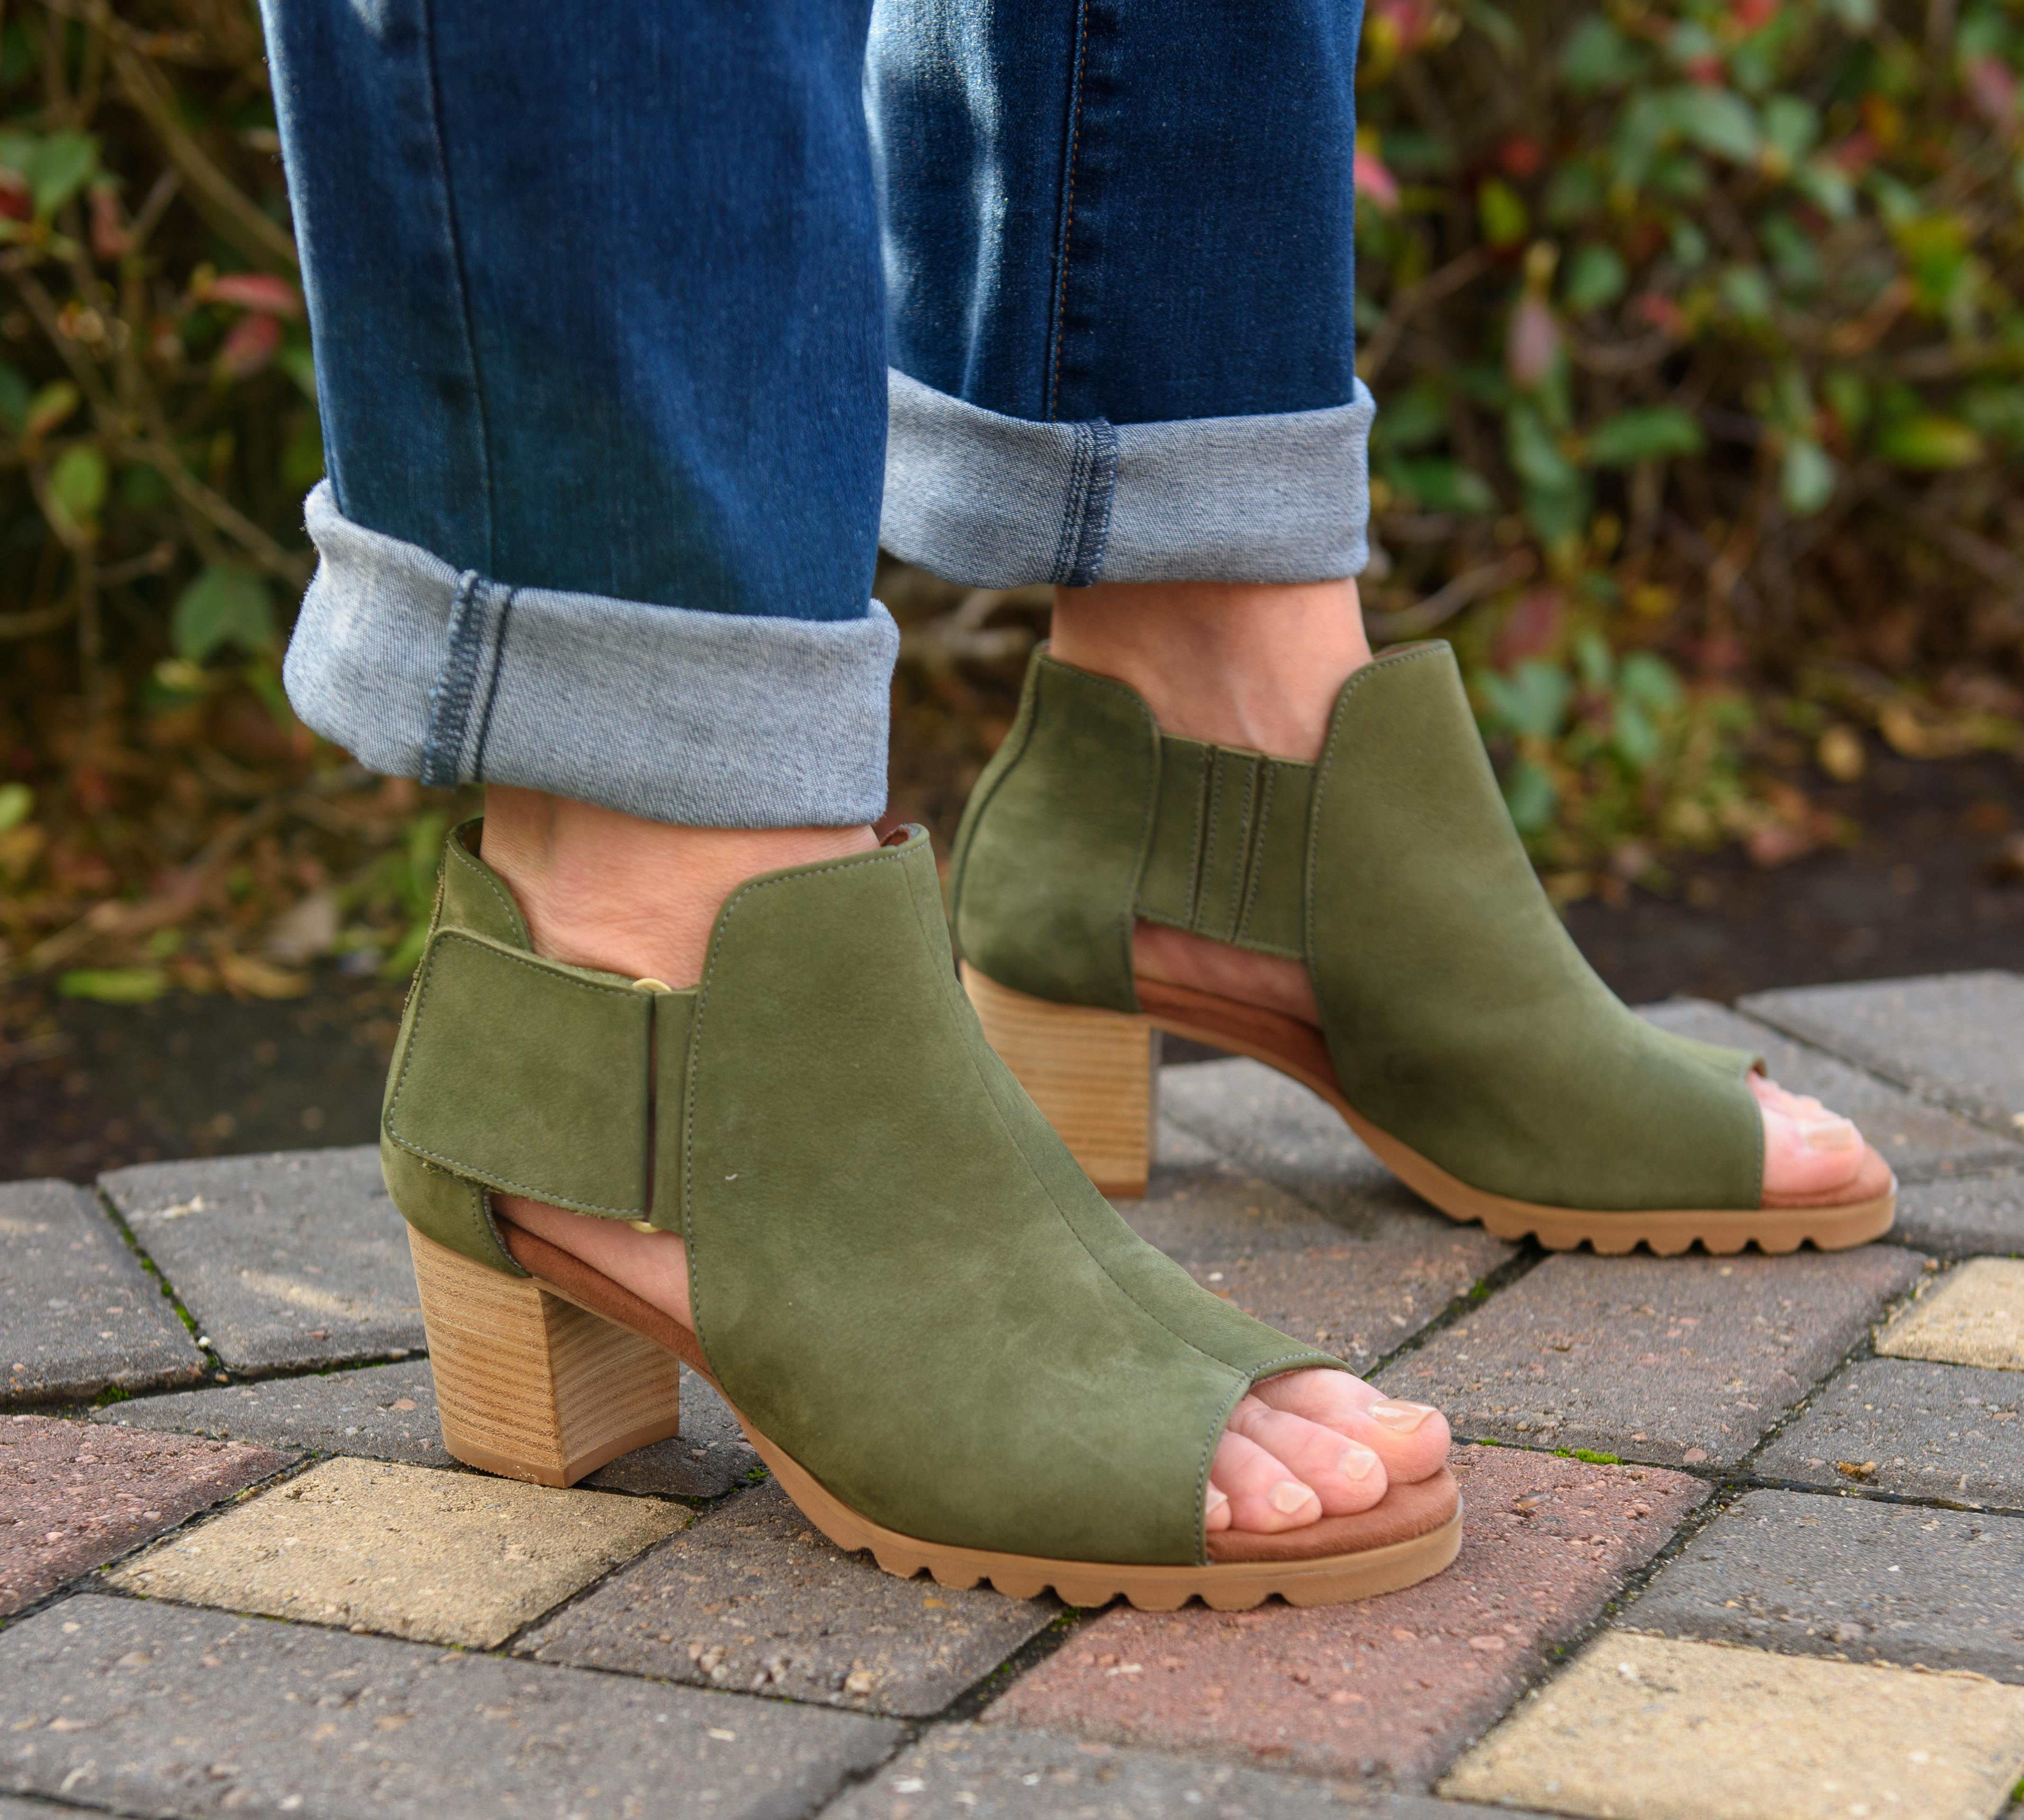 that which walking not and exclusive can only the cradles comforter for through neve new part brand collection comfortable shoes walkingcradles boutique you stylish booties is of get are this bootie com